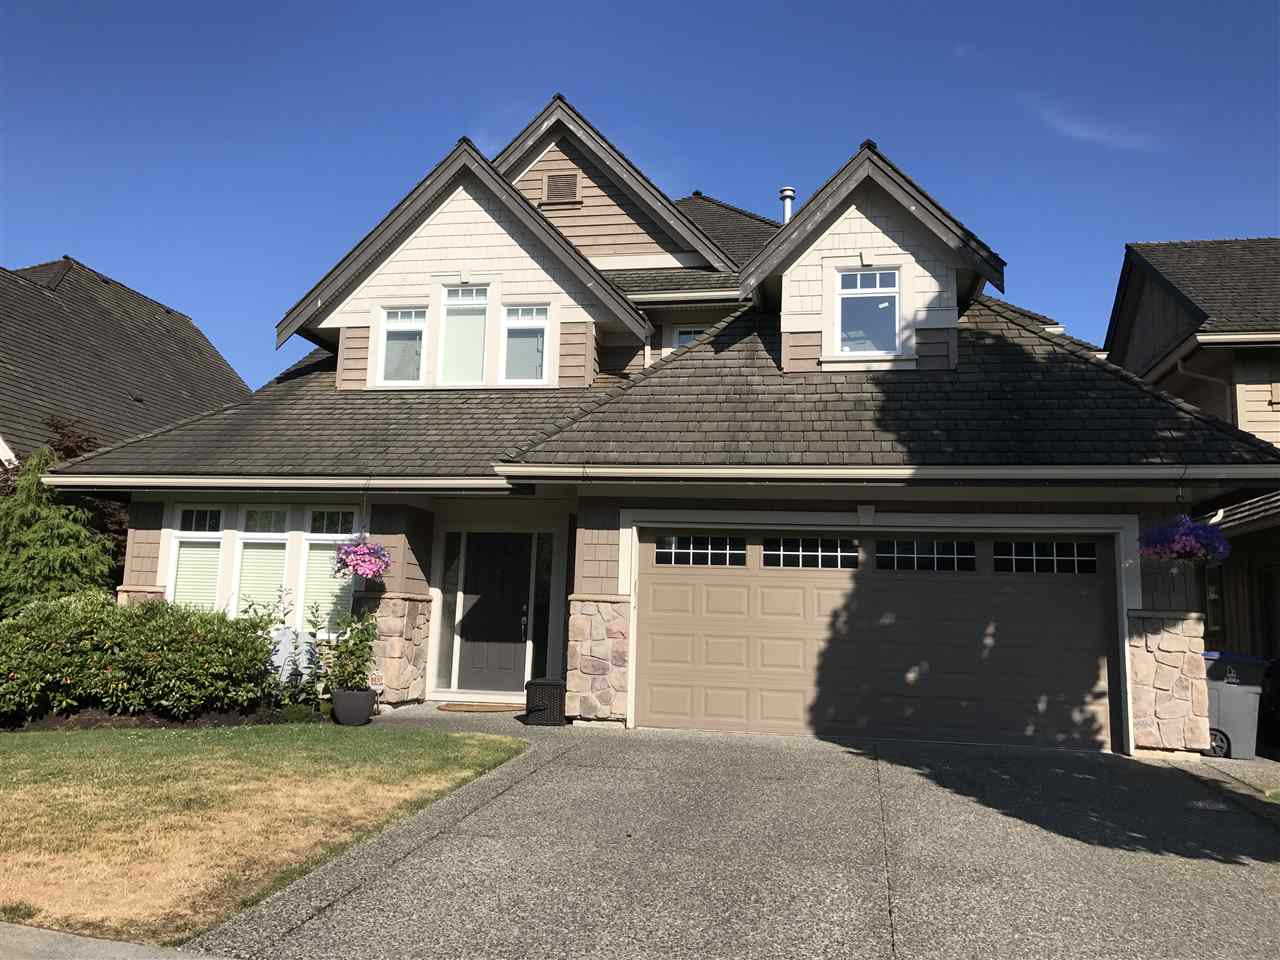 Detached at 23 3300 157A STREET, Unit 23, South Surrey White Rock, British Columbia. Image 1